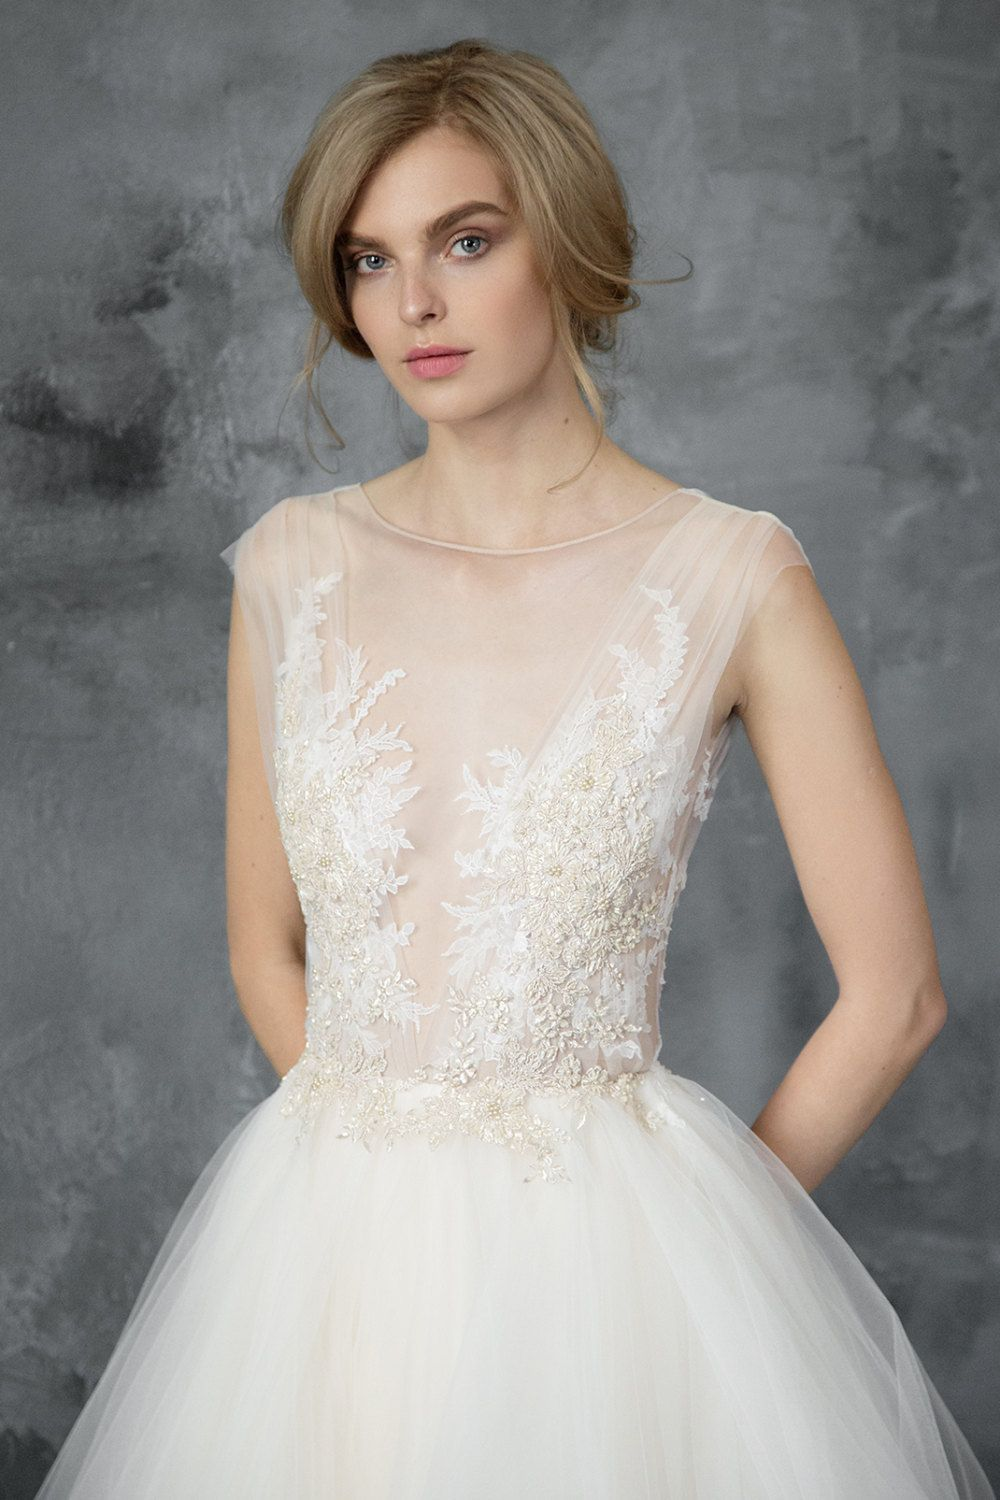 Champagne and ivory wedding dress  Champagne and ivory tulle wedding dress  Dione  Open back bridal